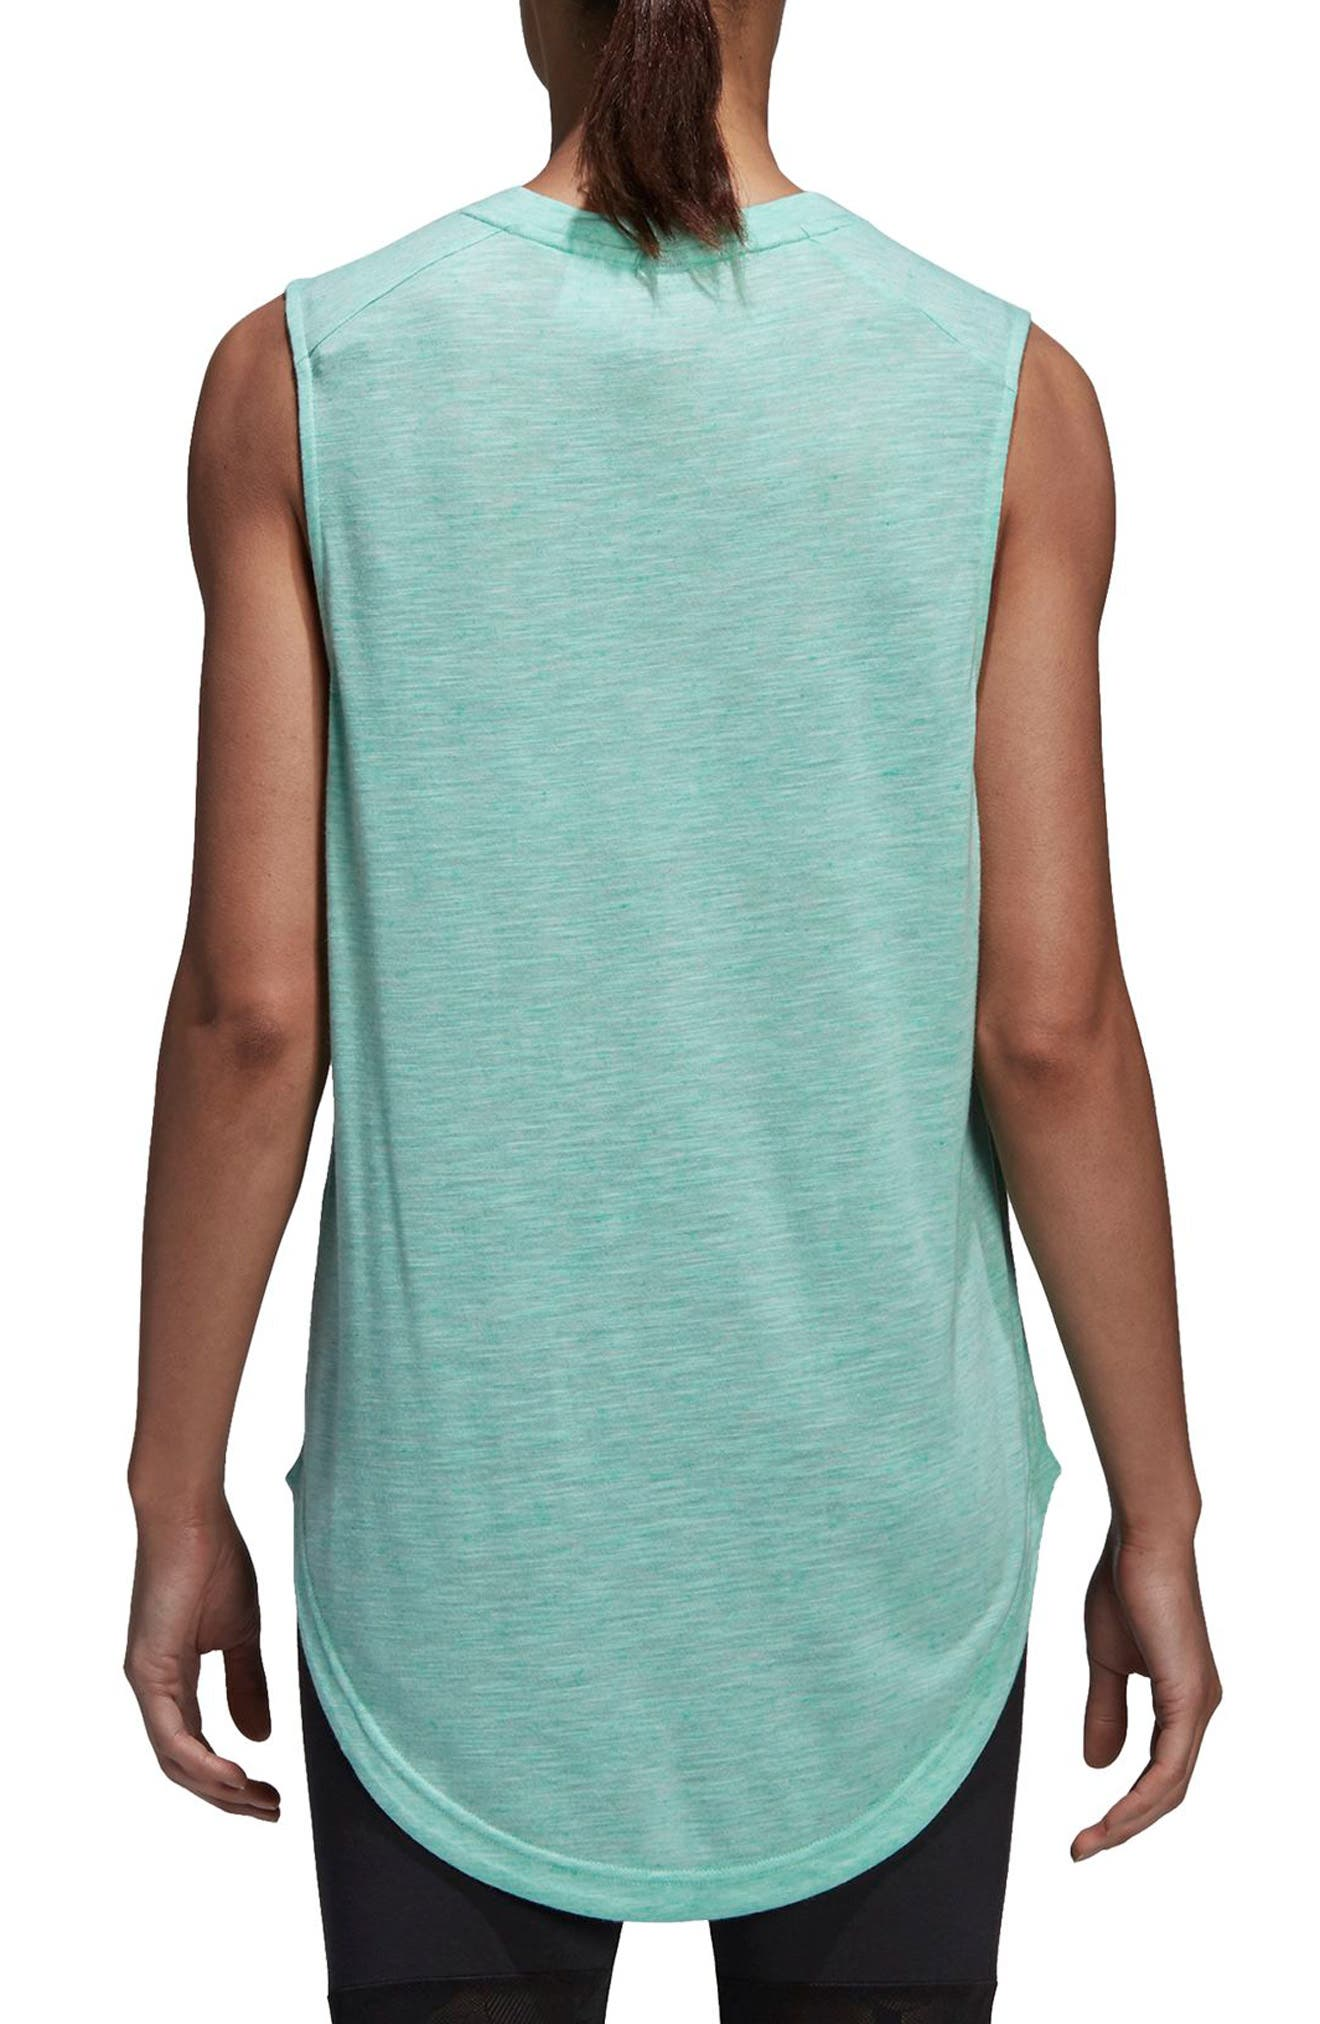 ADIDAS,                             Winners Logo Muscle Tank,                             Alternate thumbnail 2, color,                             330